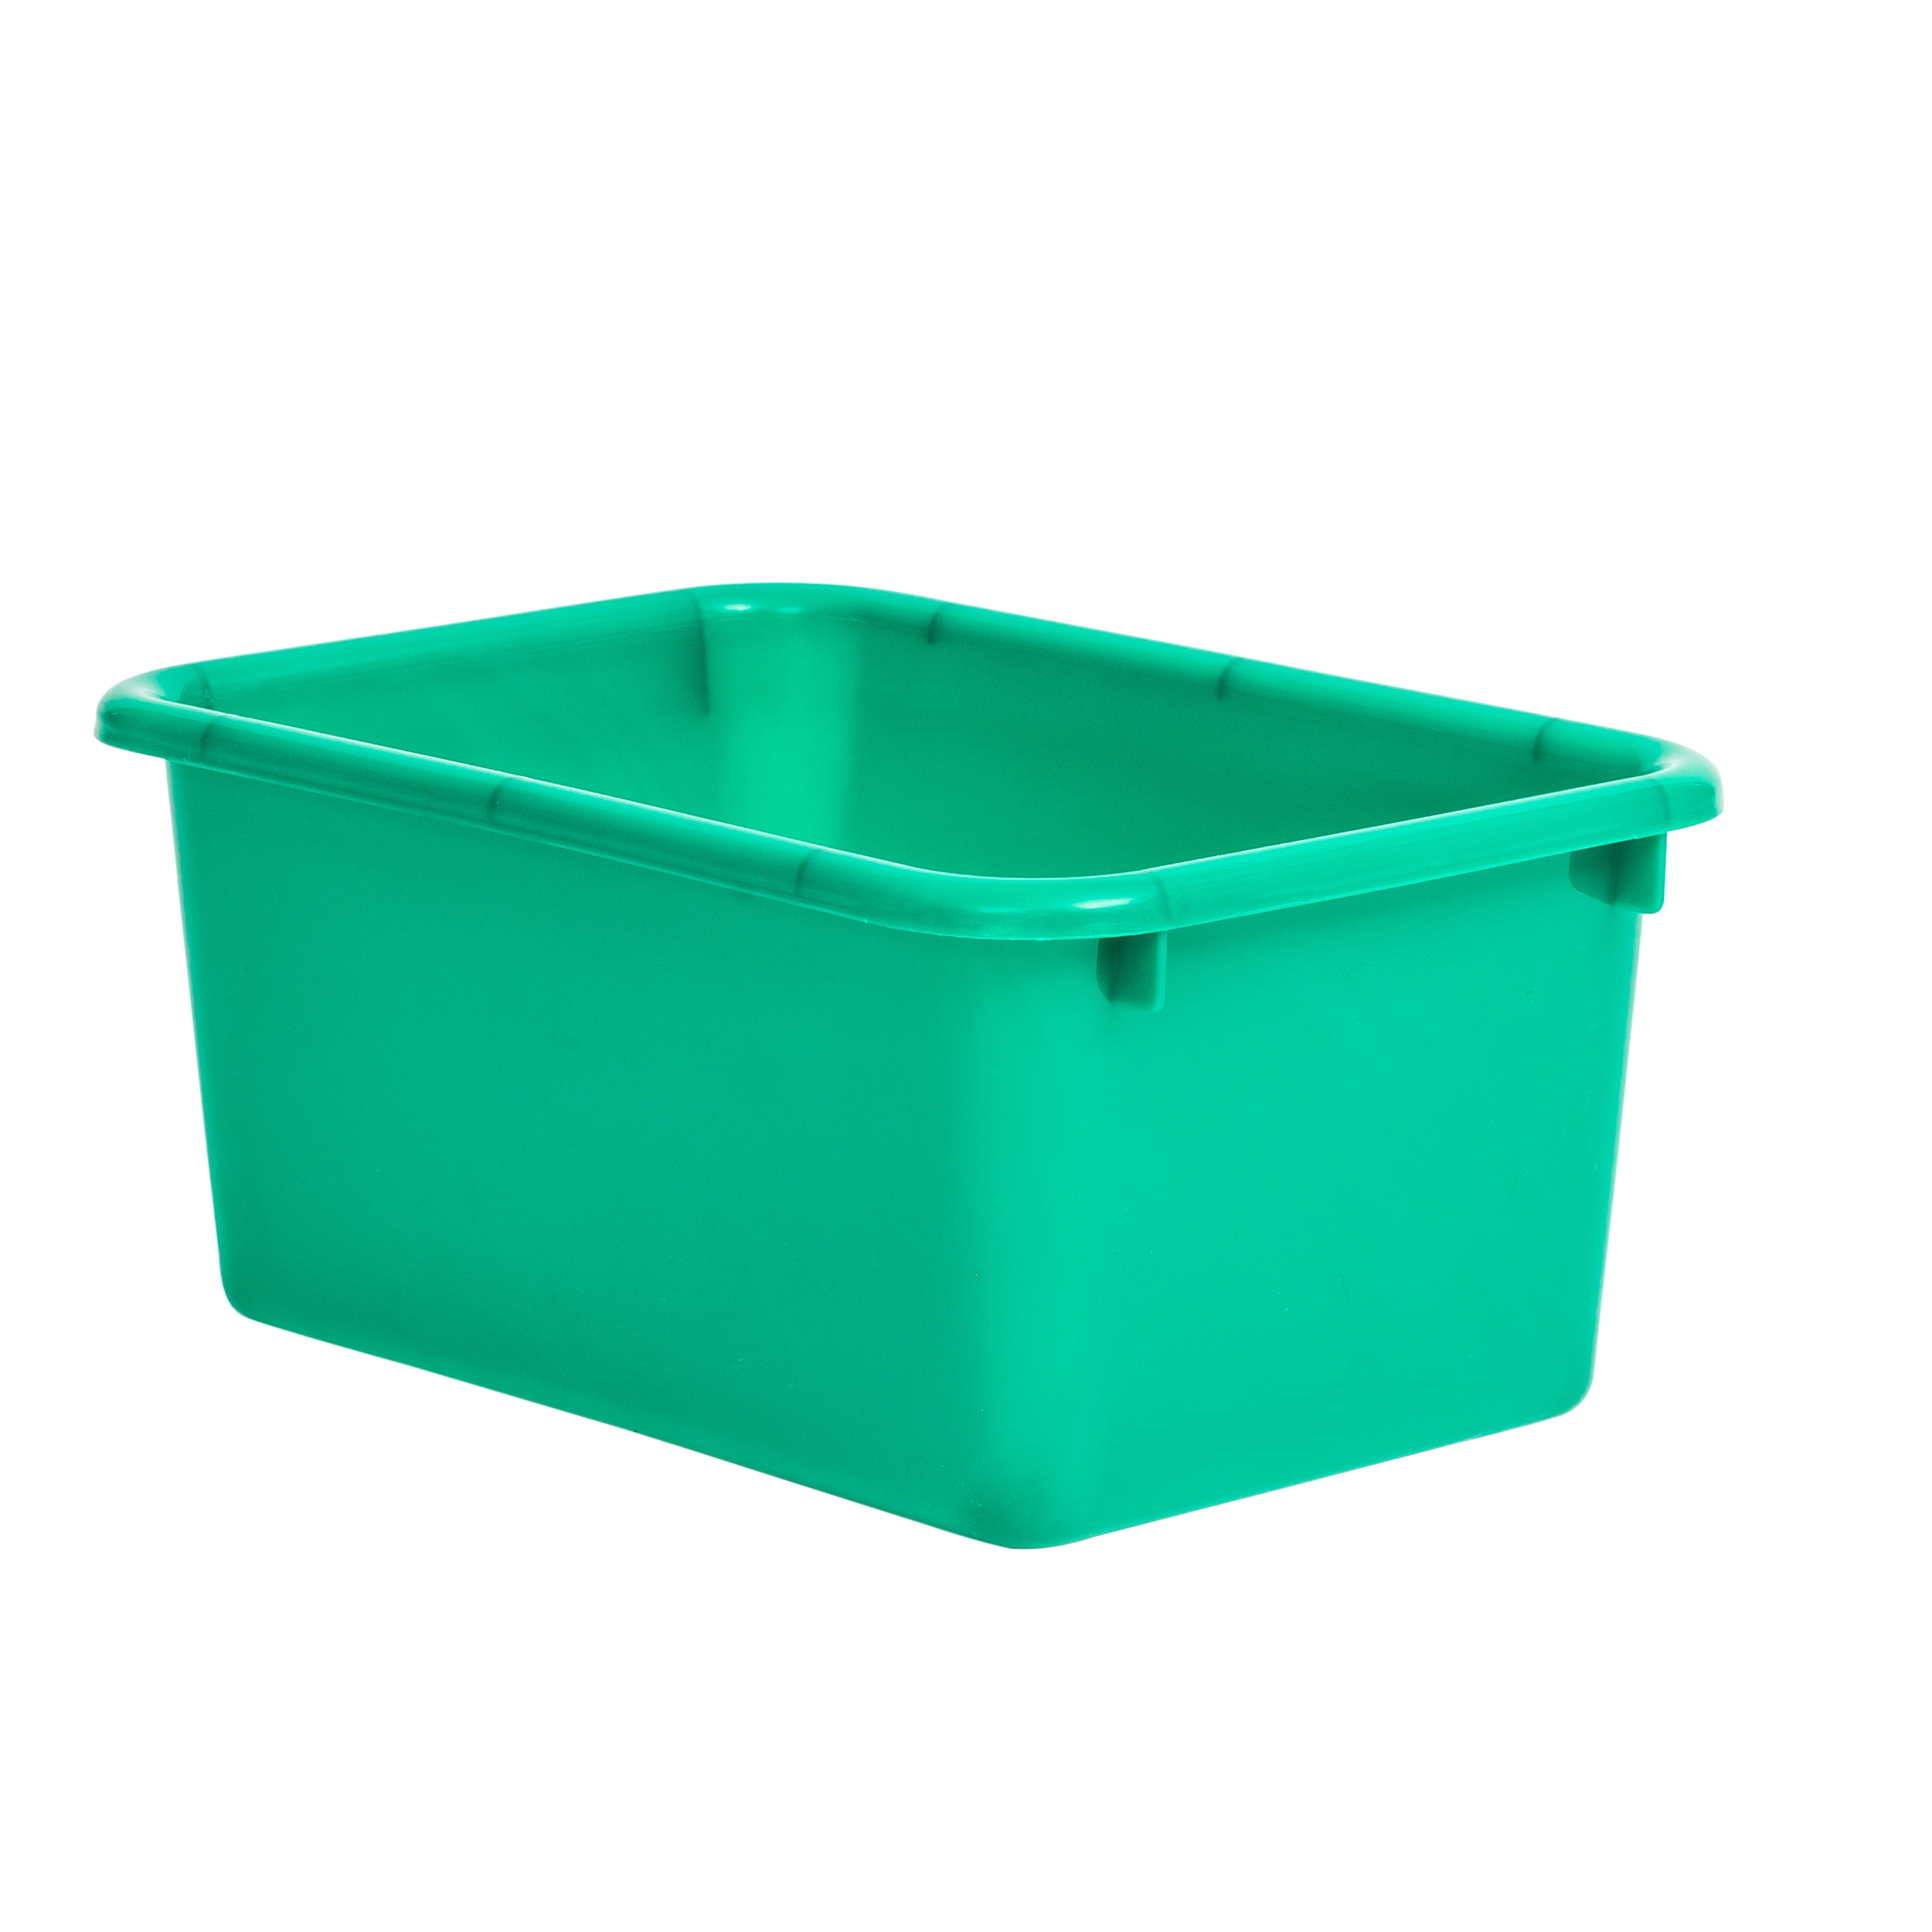 Shop storage bins & baskets in the baskets & storage containers section of bestsupsm5.cf Find quality storage bins & baskets online or in store.